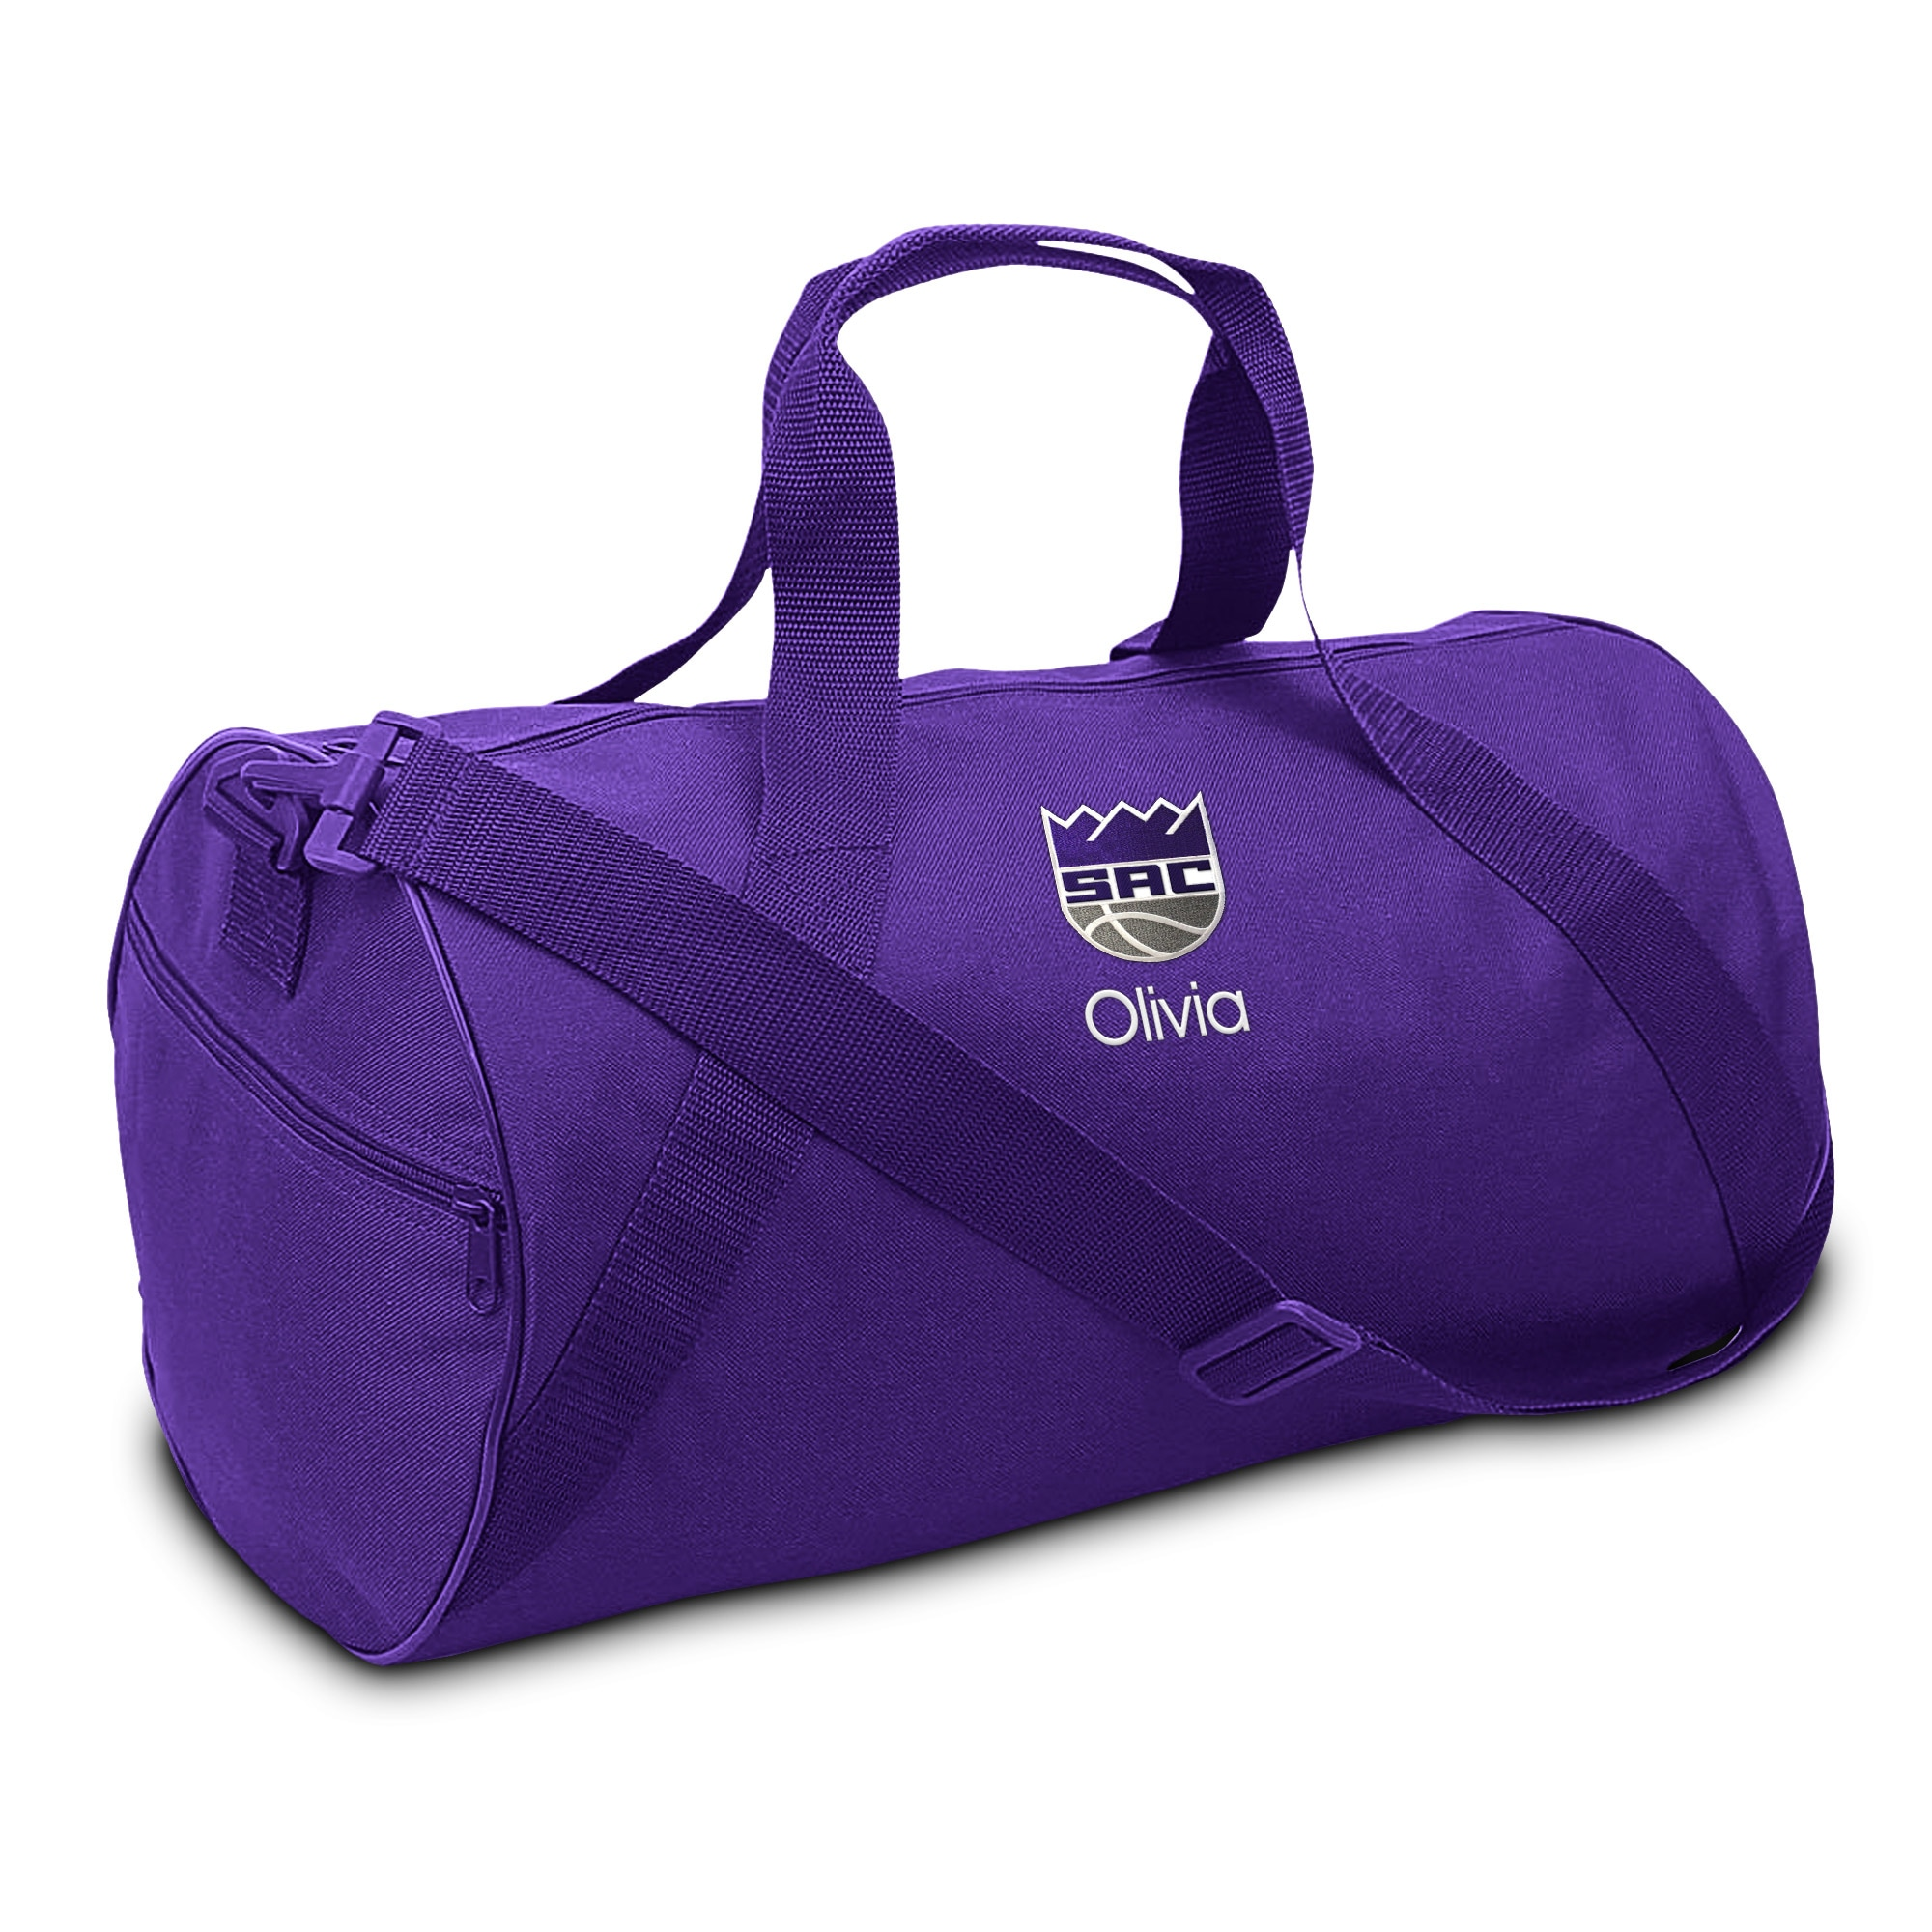 Sacramento Kings Youth Personalized Duffel Bag - Purple